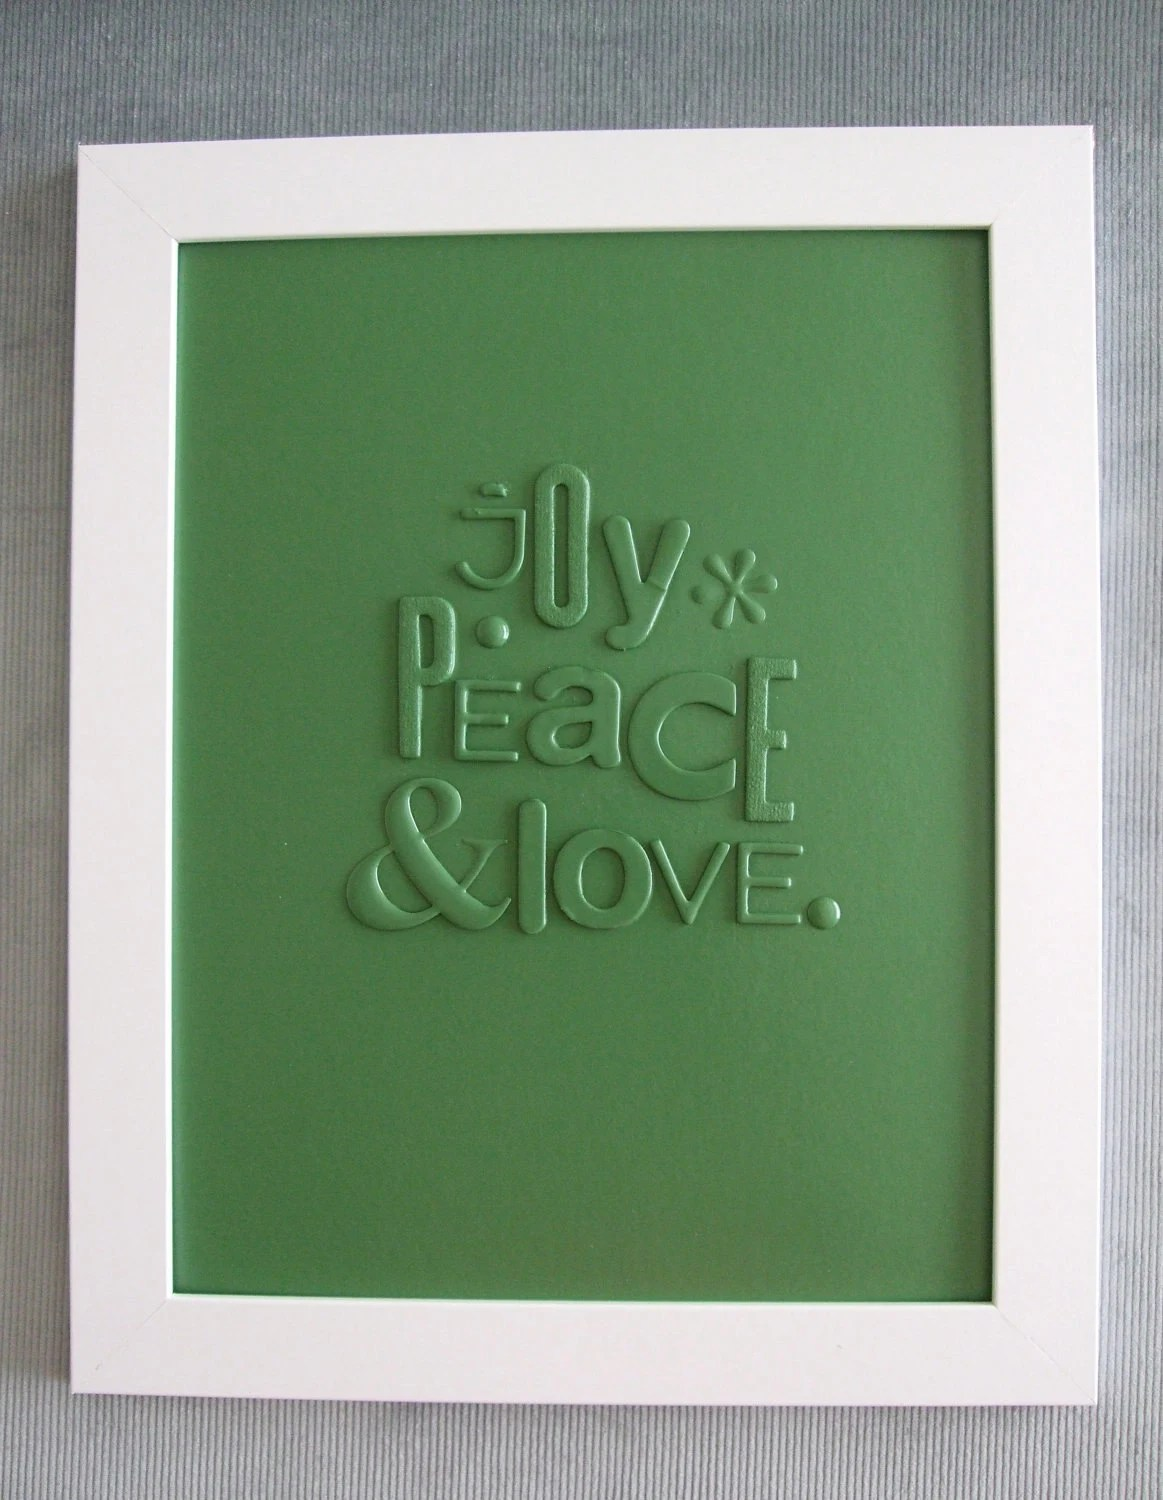 JOY PEACE & LOVE green typography collage